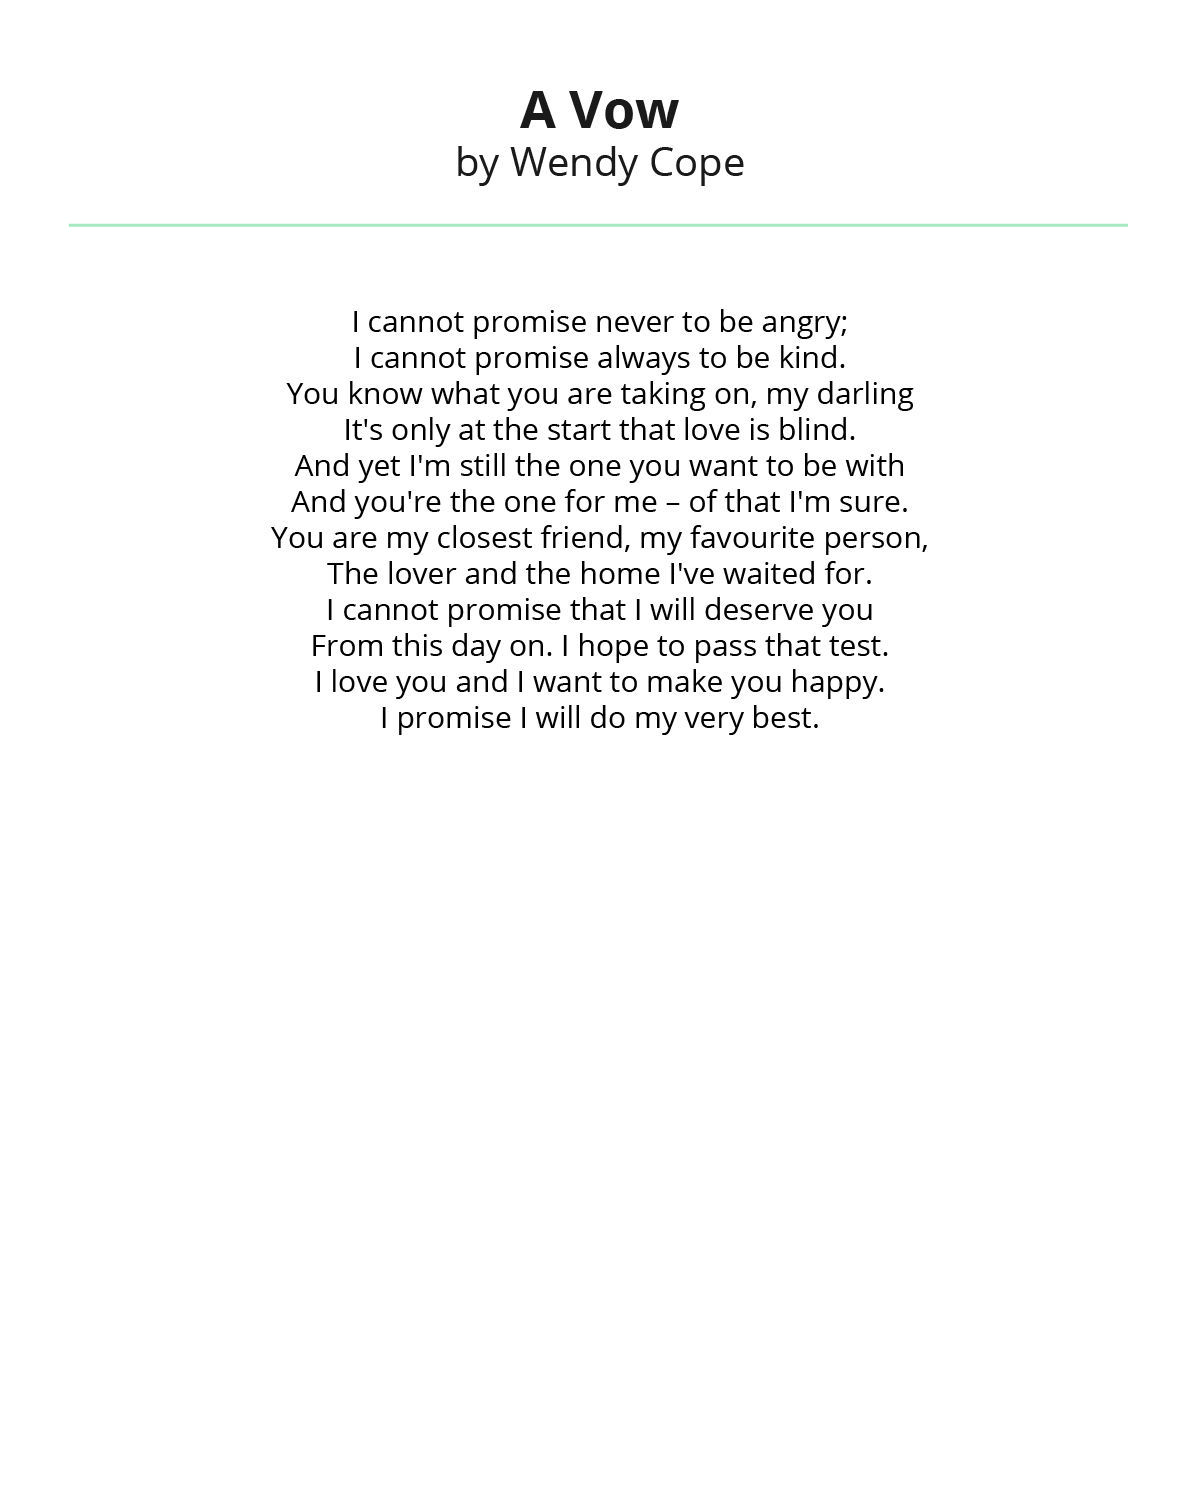 A Vow By Wendy Cope